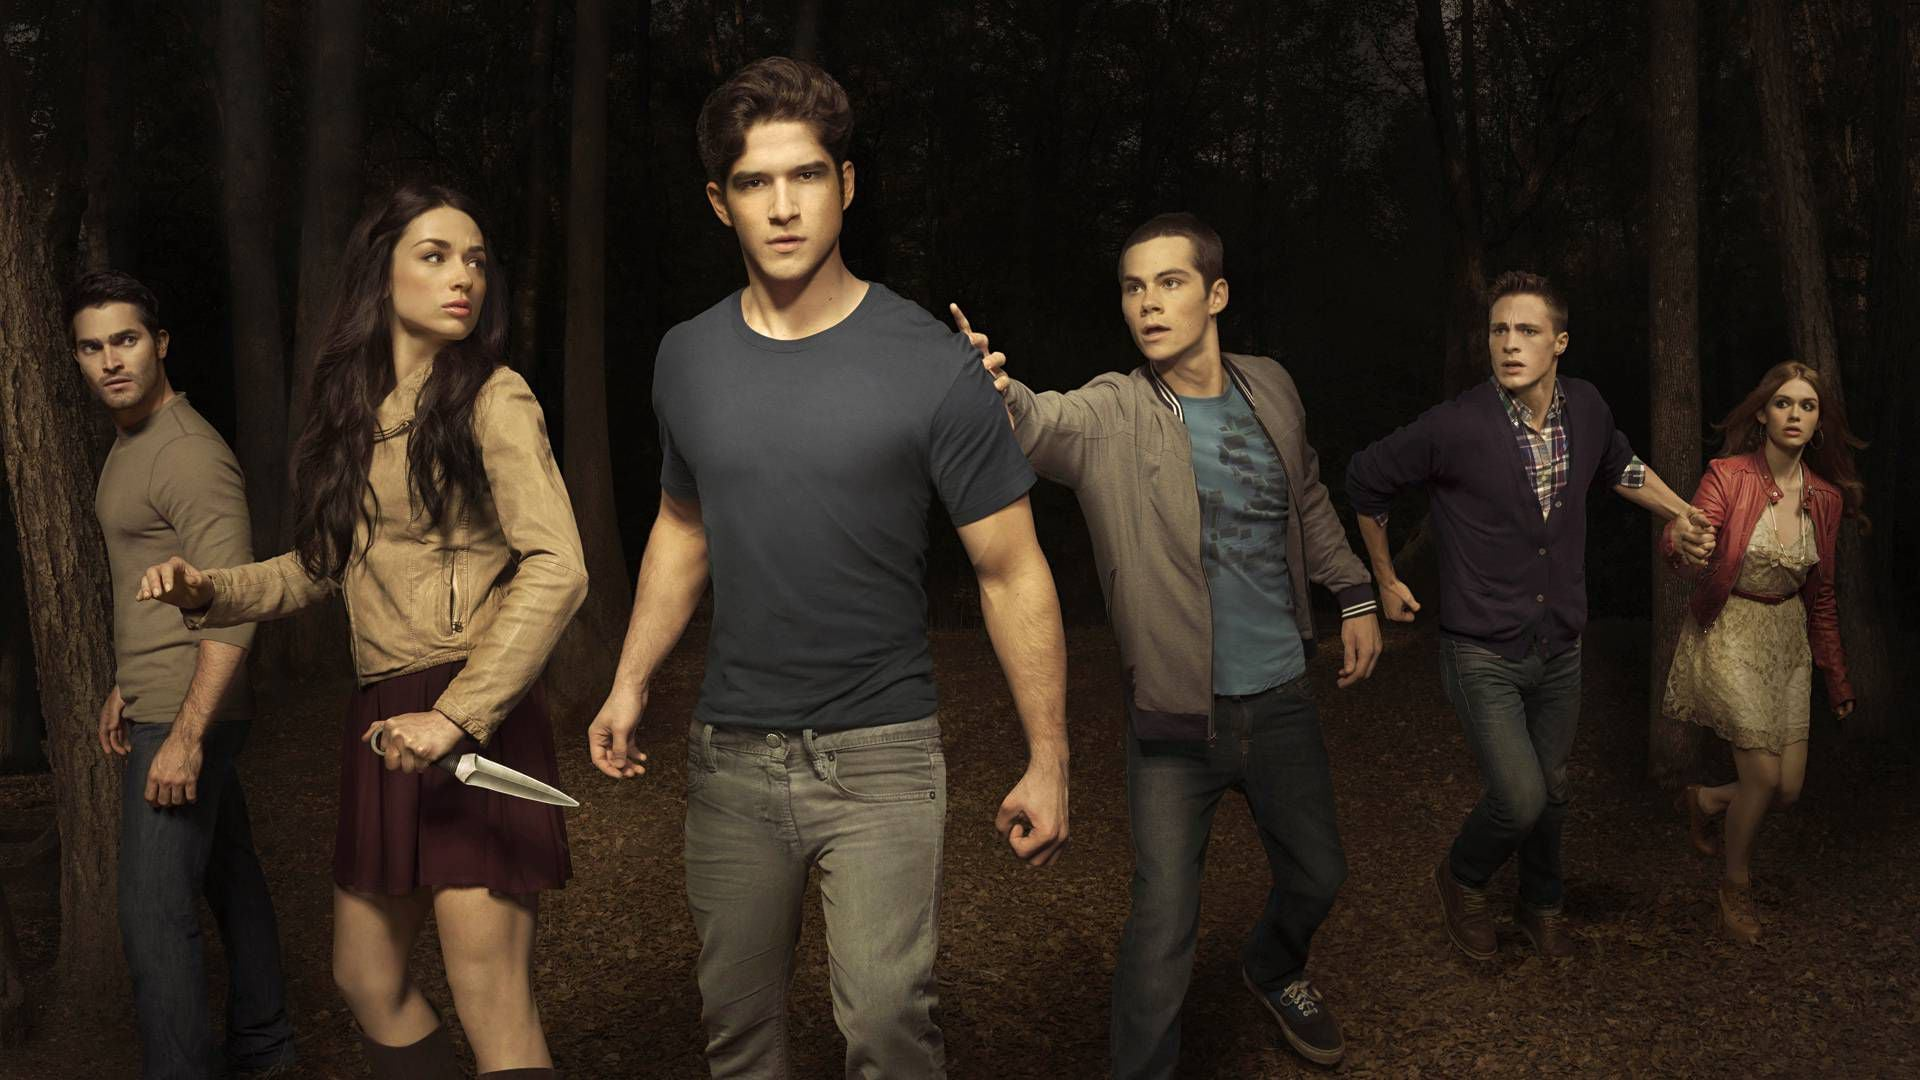 teen wolf tv series wallpapers hd download